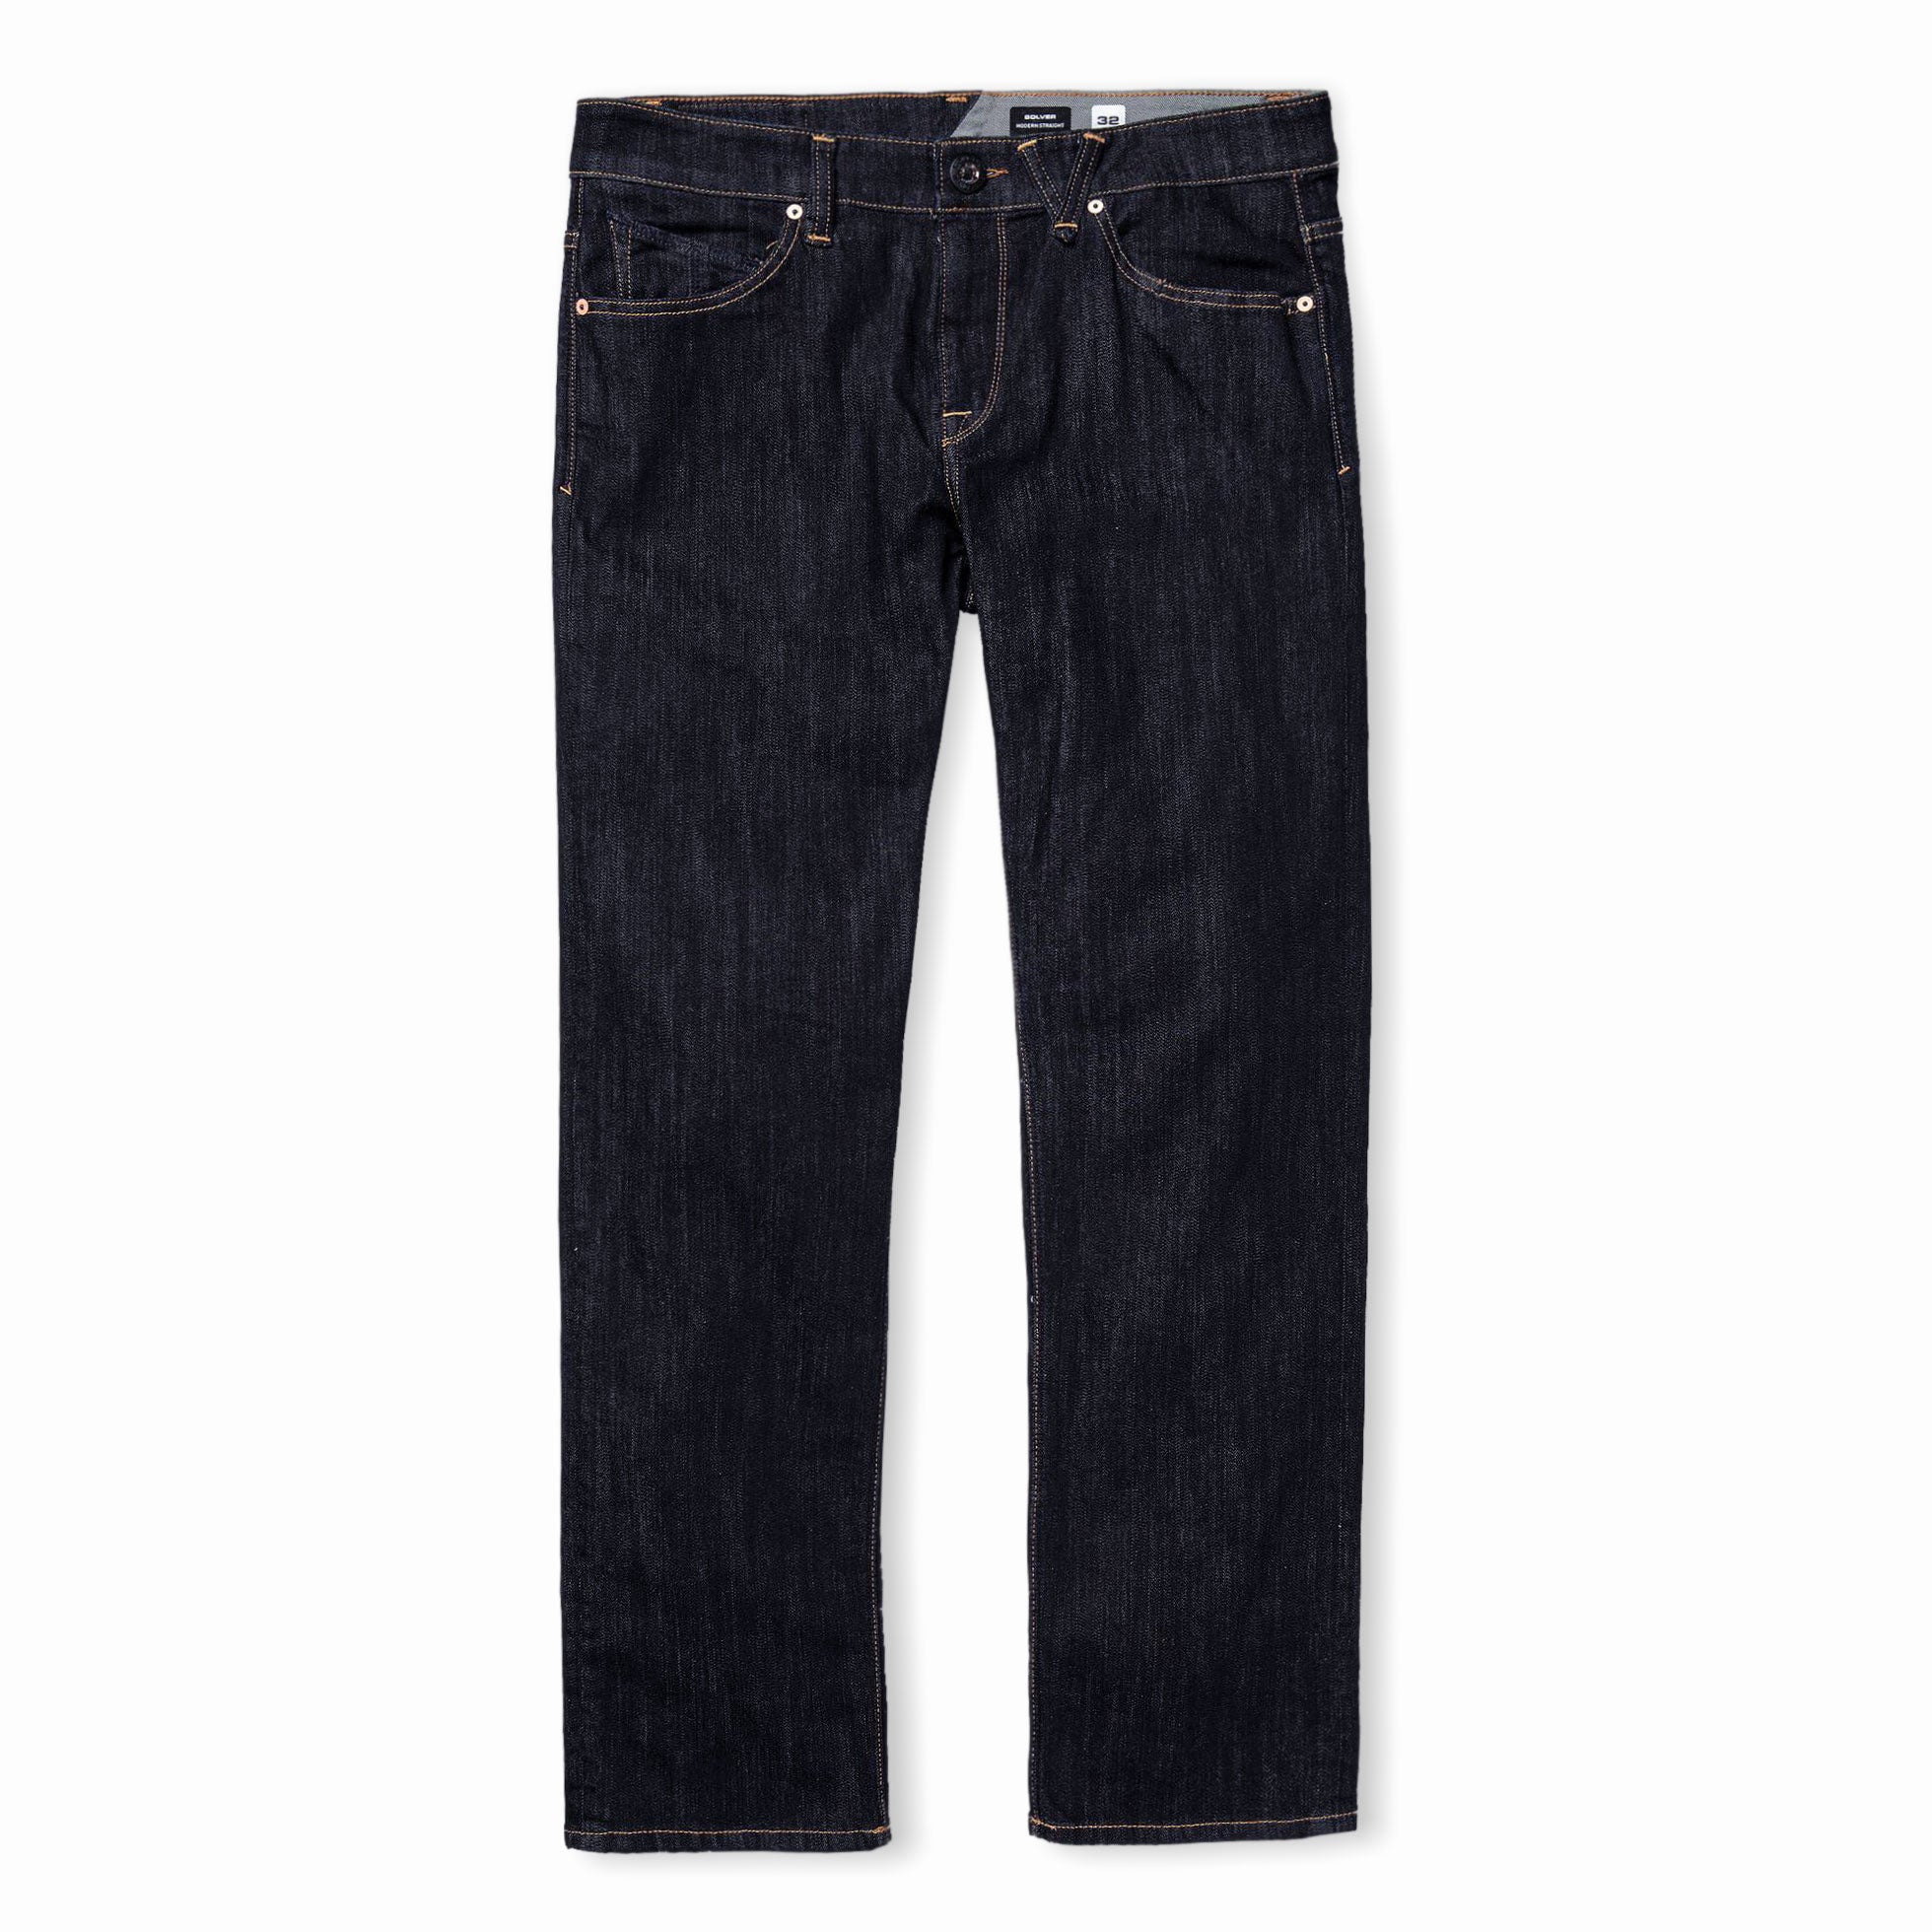 Volcom Solver Denim Jeans Product Photo #1